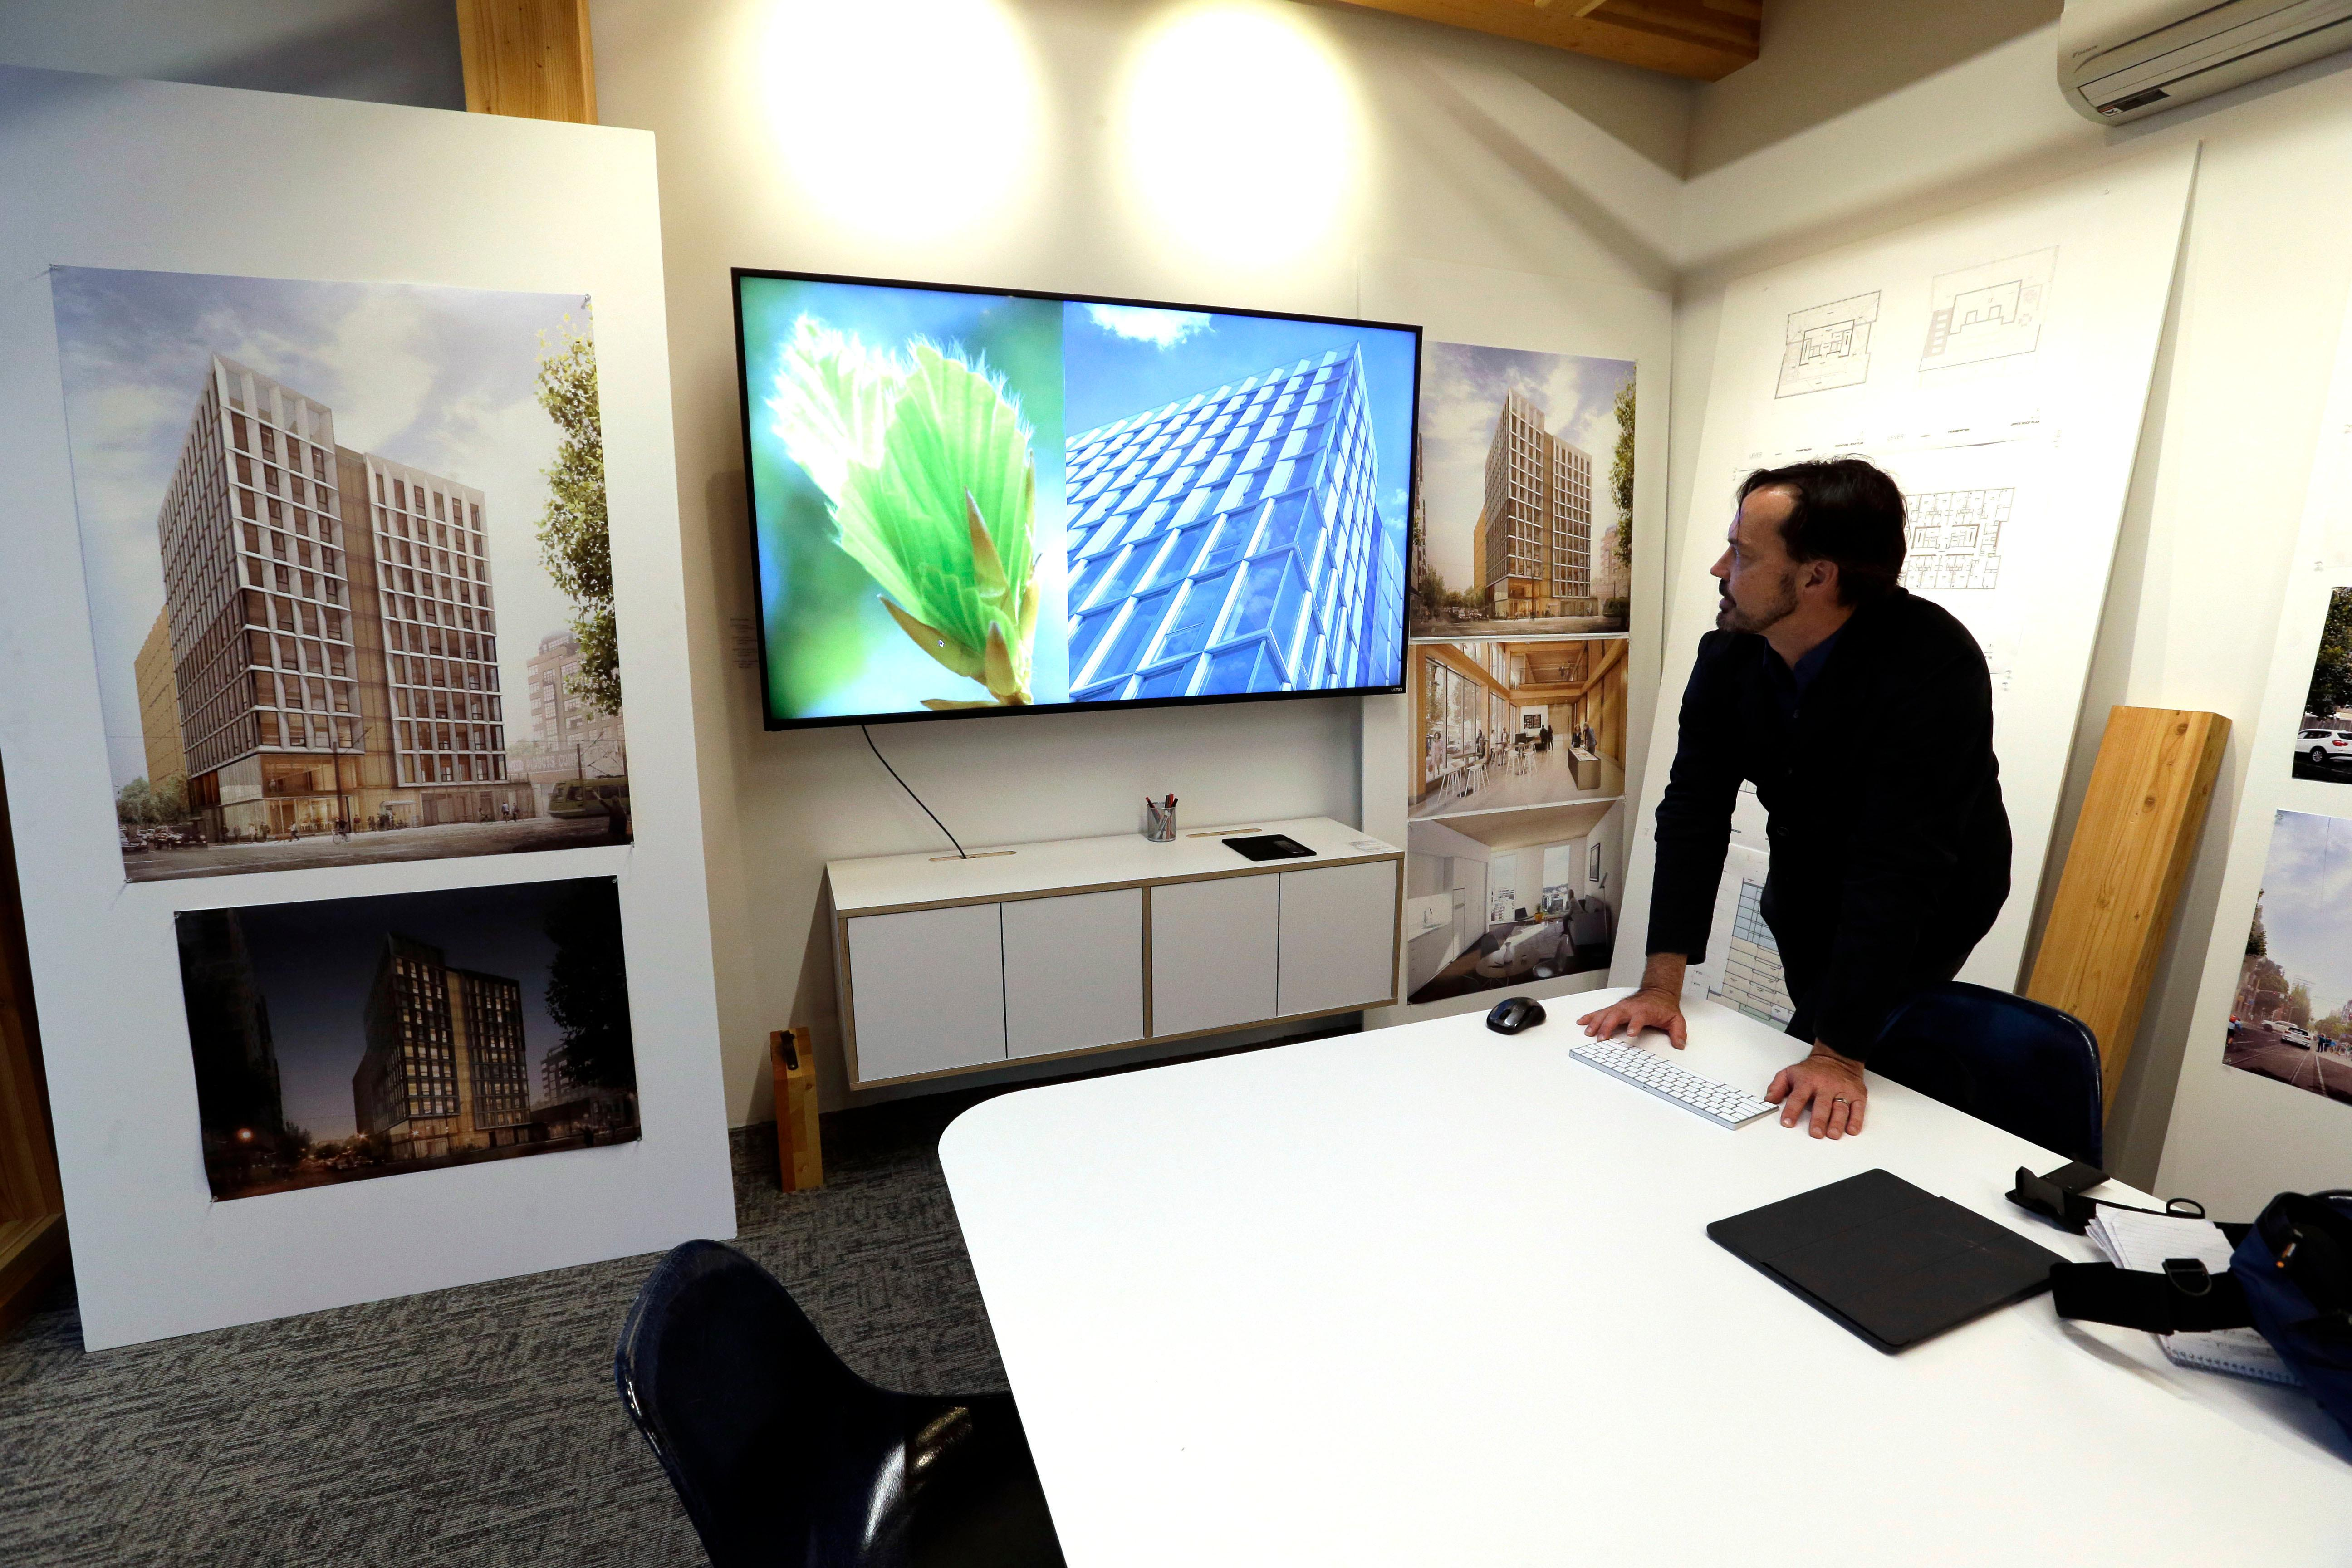 FILE- In this Nov. 15, 2016, file photo, Lever Architecture founder Thomas Robinson looks over artist renderings in Portland, Ore., of a 12-story all-wood building that his firm is working on to be built in Portland's trendy Pearl District. City officials in Portland have approved a construction permit for the first all-wood high-rise building in the nation. Developers announcing the approval Tuesday, June 6, 2017, say it's a milestone for wood technology. (AP Photo/Don Ryan, File)